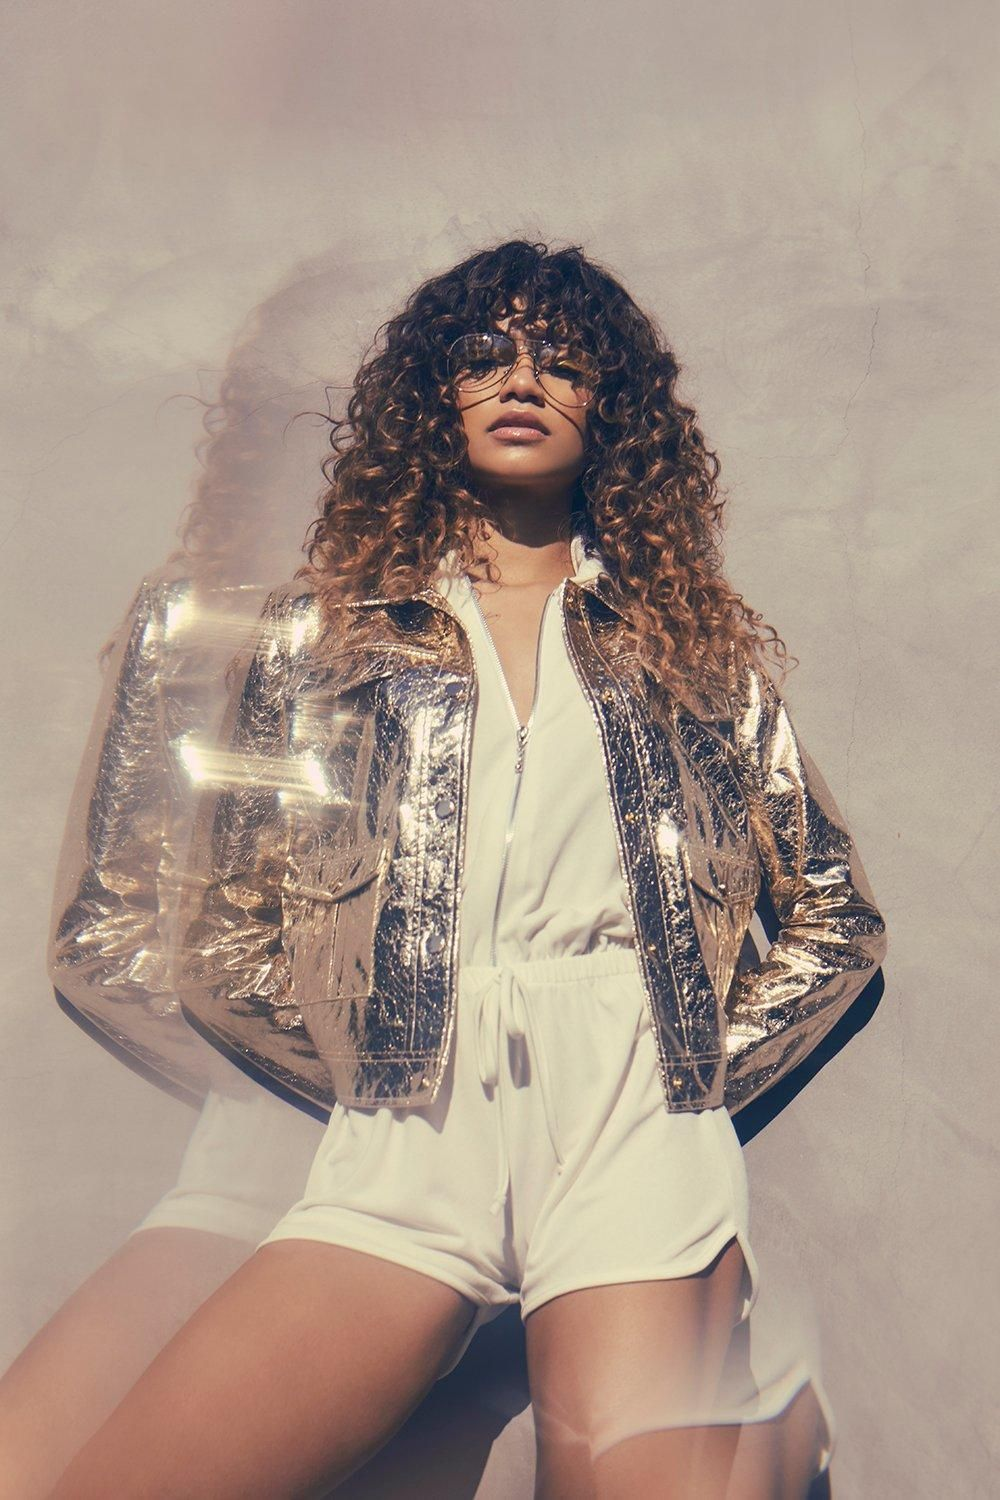 381065943f zendaya edit us. Inspired by her own style, the edit gives a nod to the 90s  that we think our customers will really love. Pulling from the season's  hottest ...